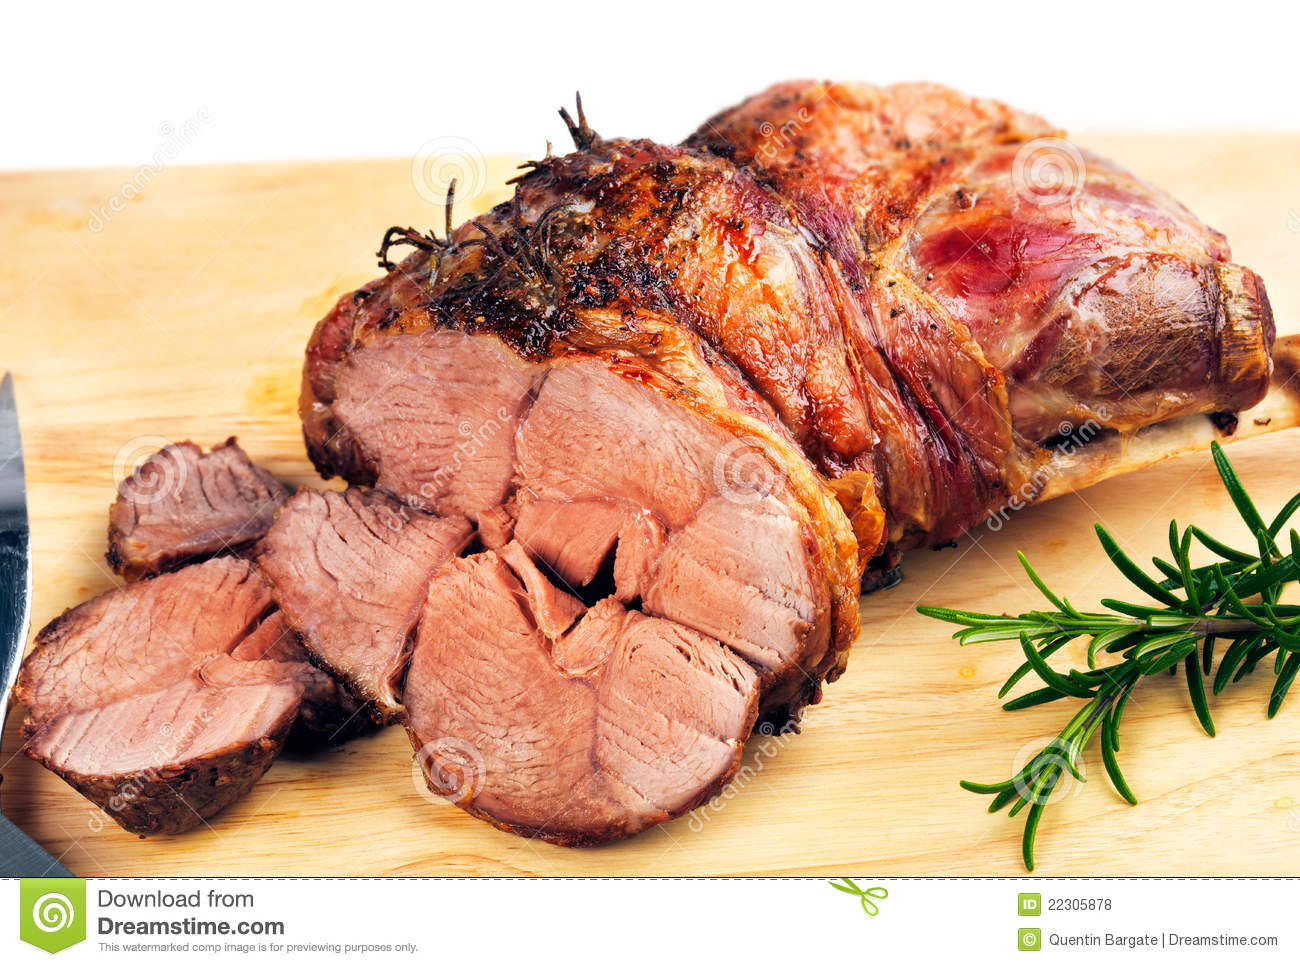 Freshly roasted leg of Lamb with Rosemary herb.